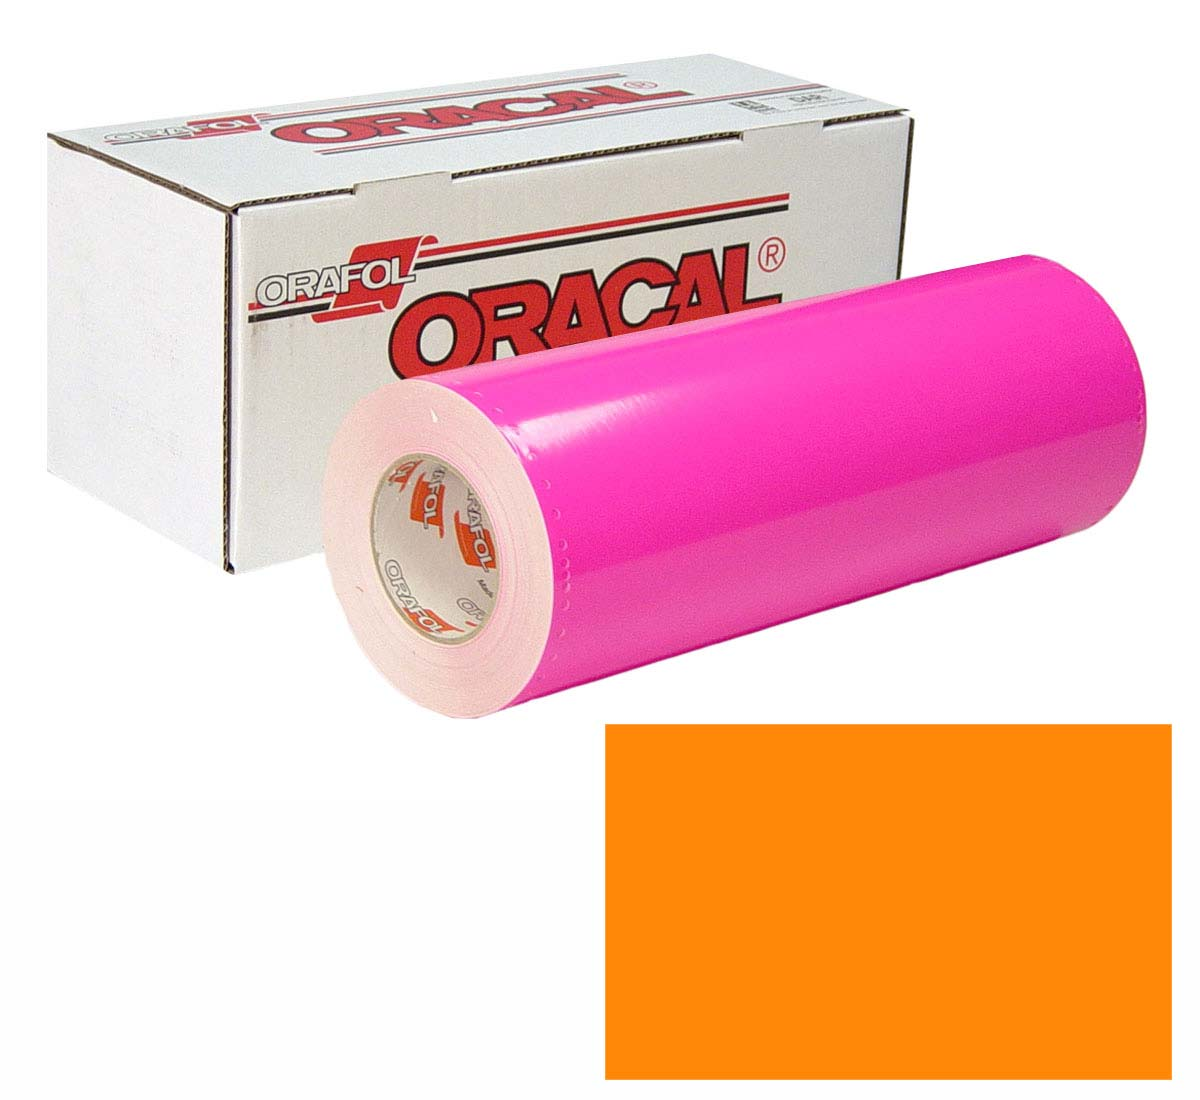 ORACAL 6510 Fluor Unp 48In X10Yd 037 Orange